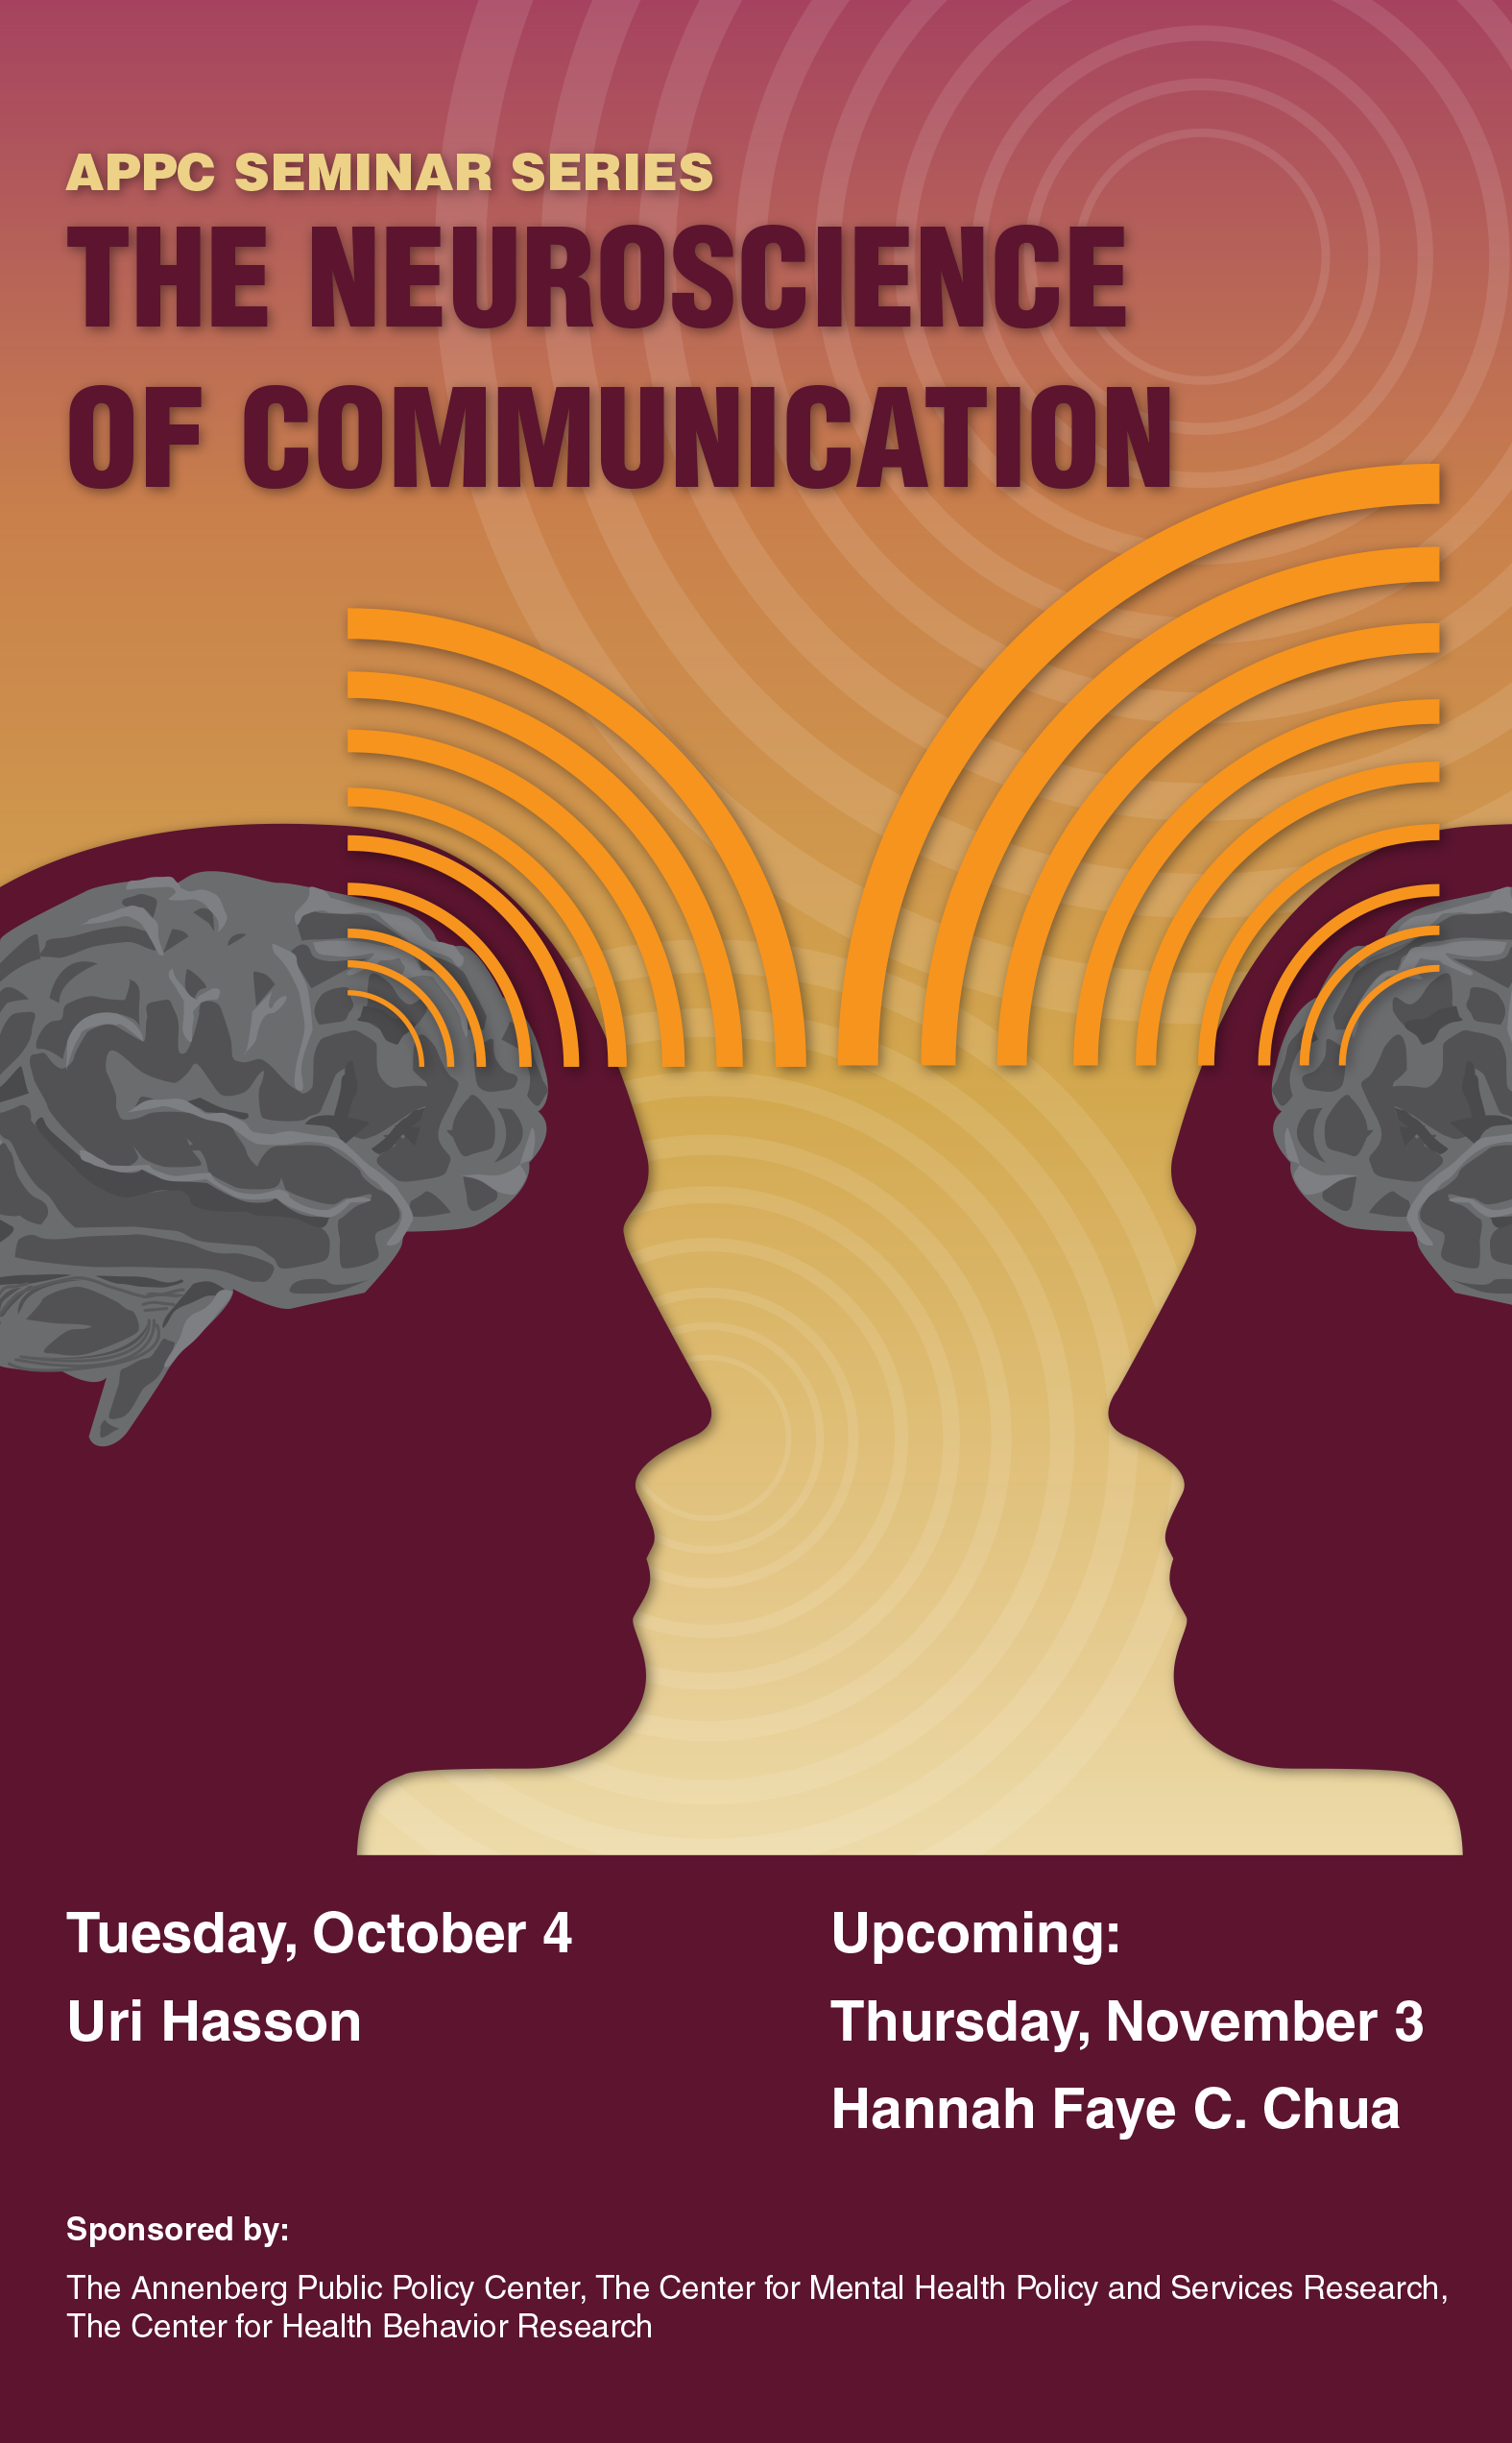 Conference flyer, Annenberg Public Policy Center, University of Pennsylvania